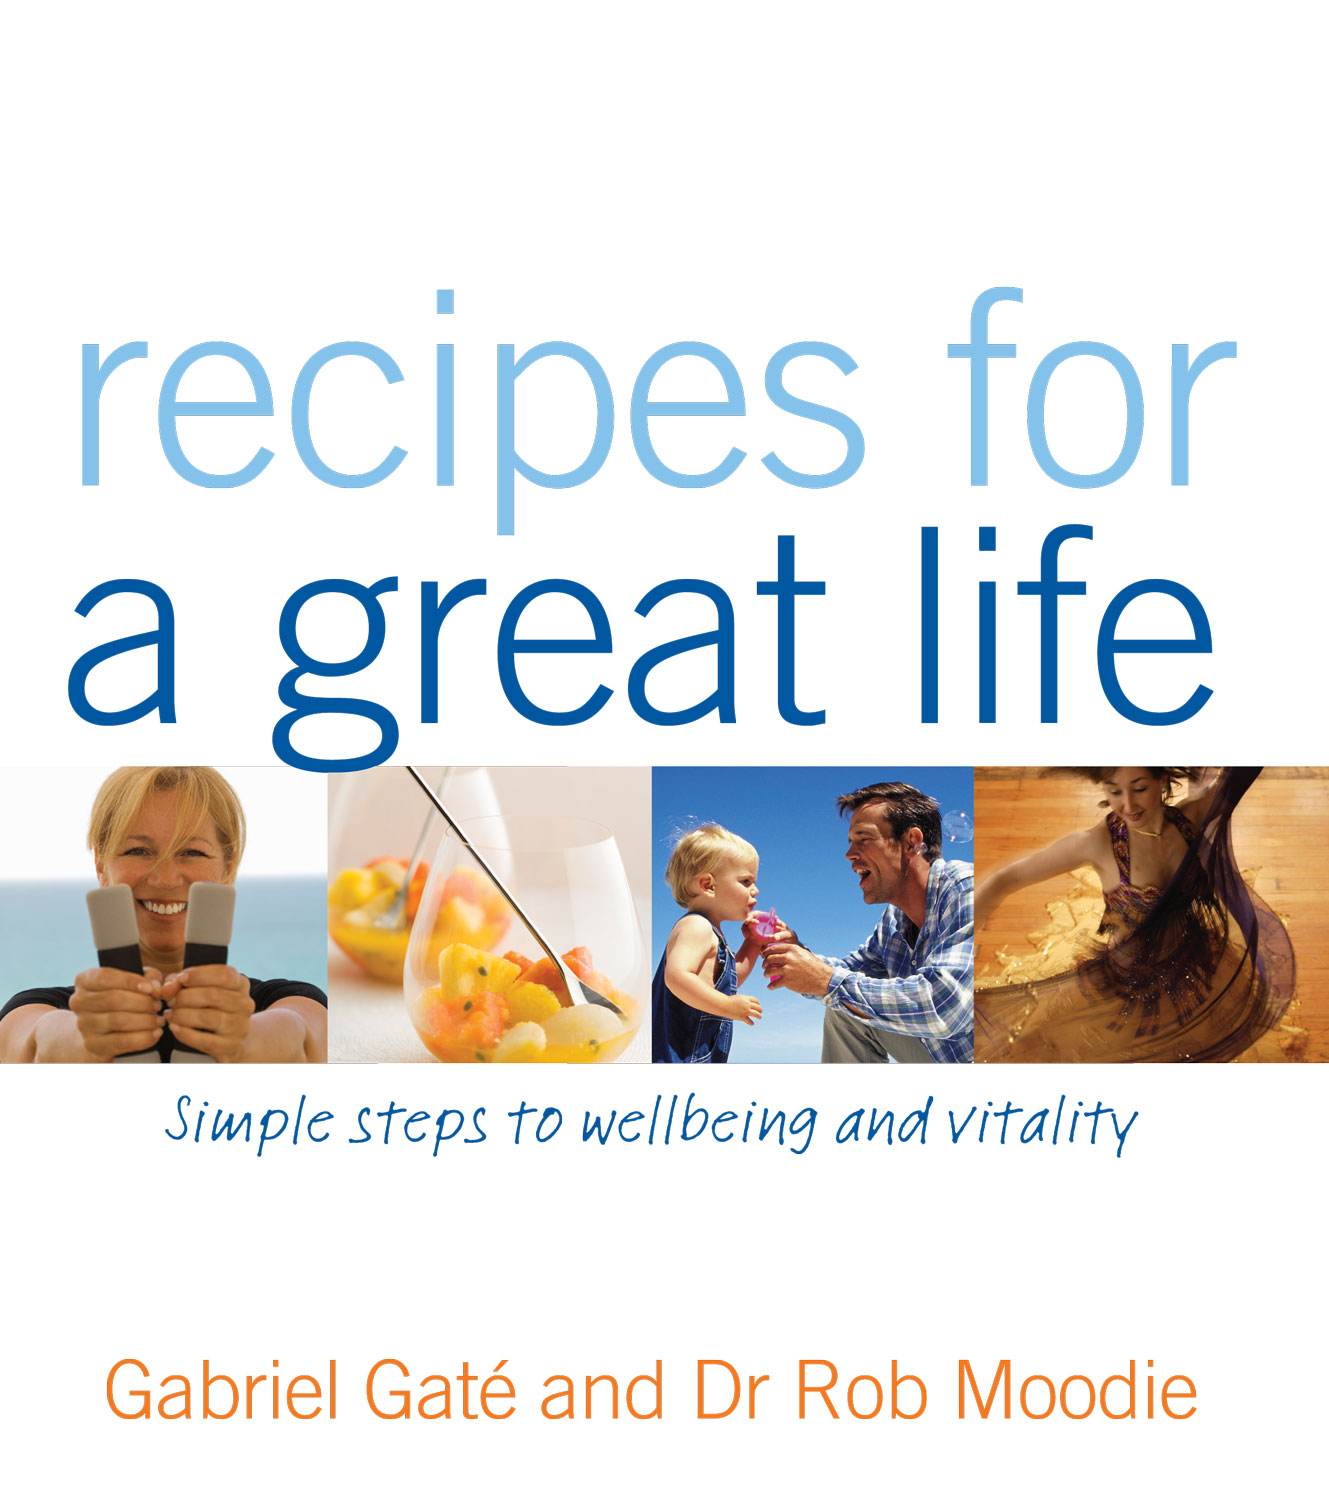 Recipes for a Great Life